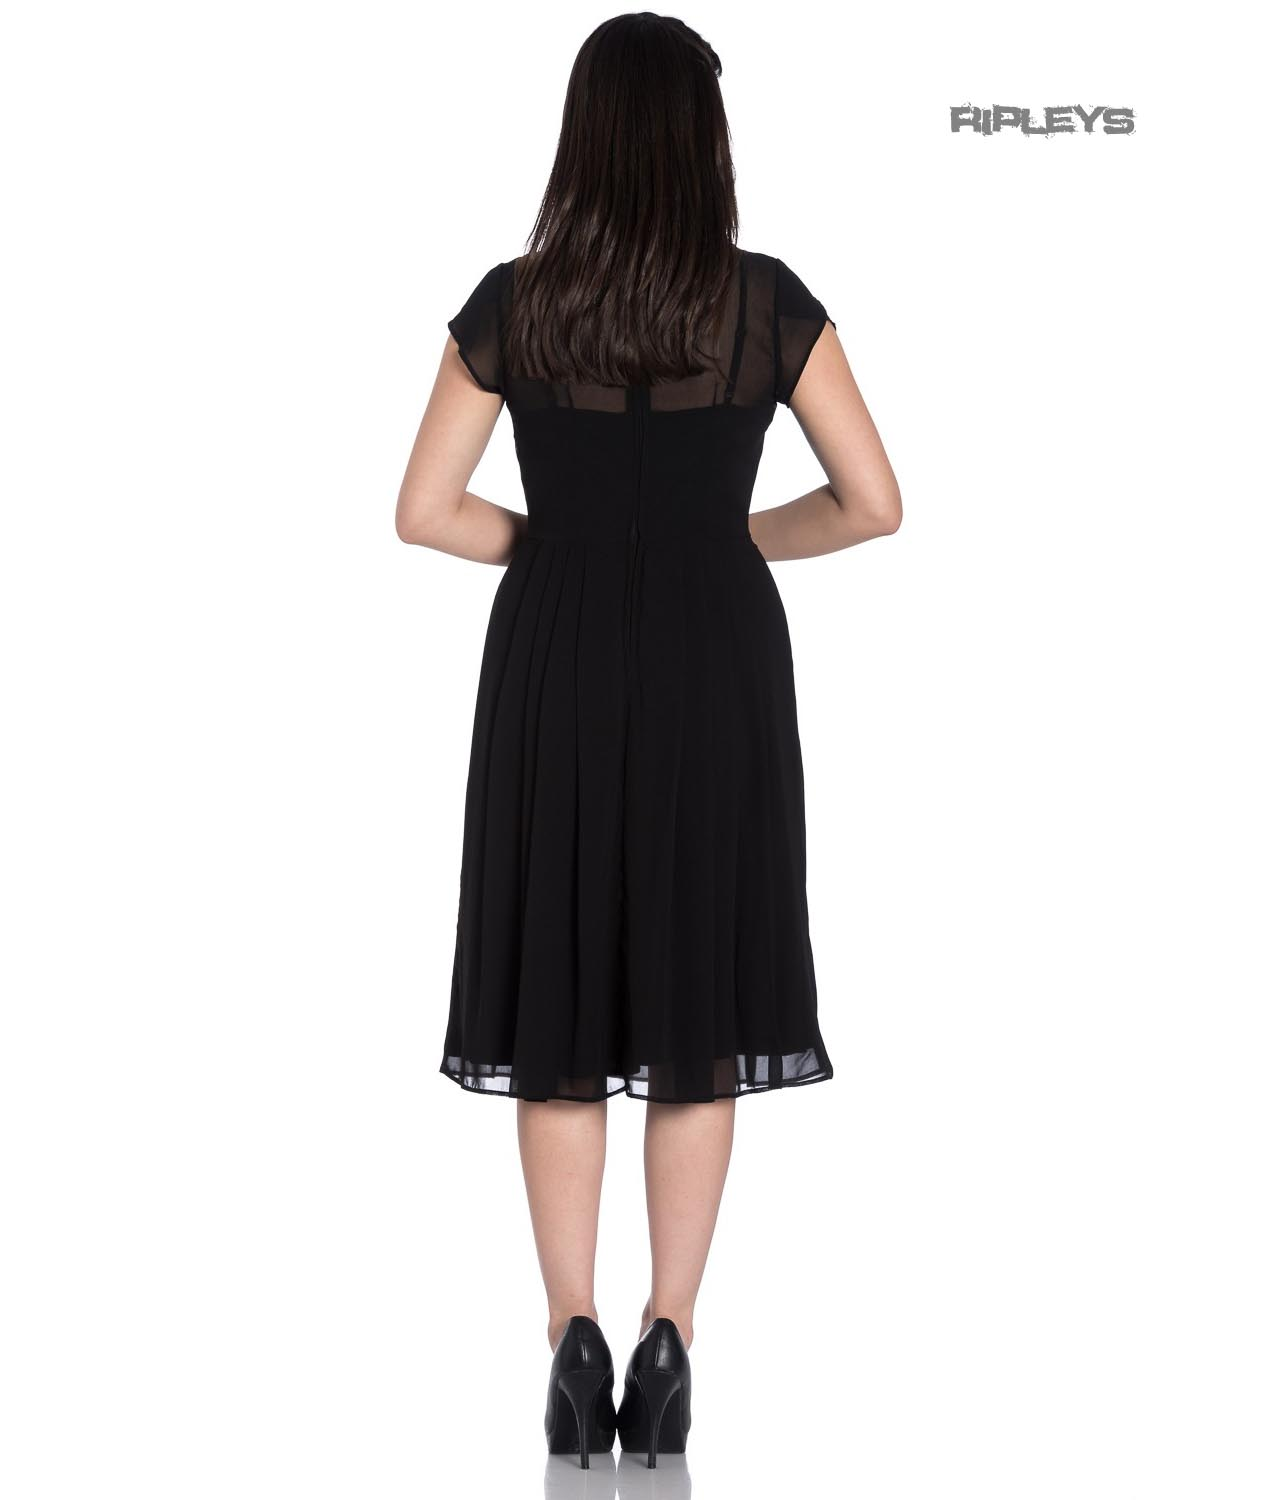 Hell-Bunny-40s-50s-Elegant-Pin-Up-Dress-PAIGE-Black-Chiffon-All-Sizes thumbnail 8